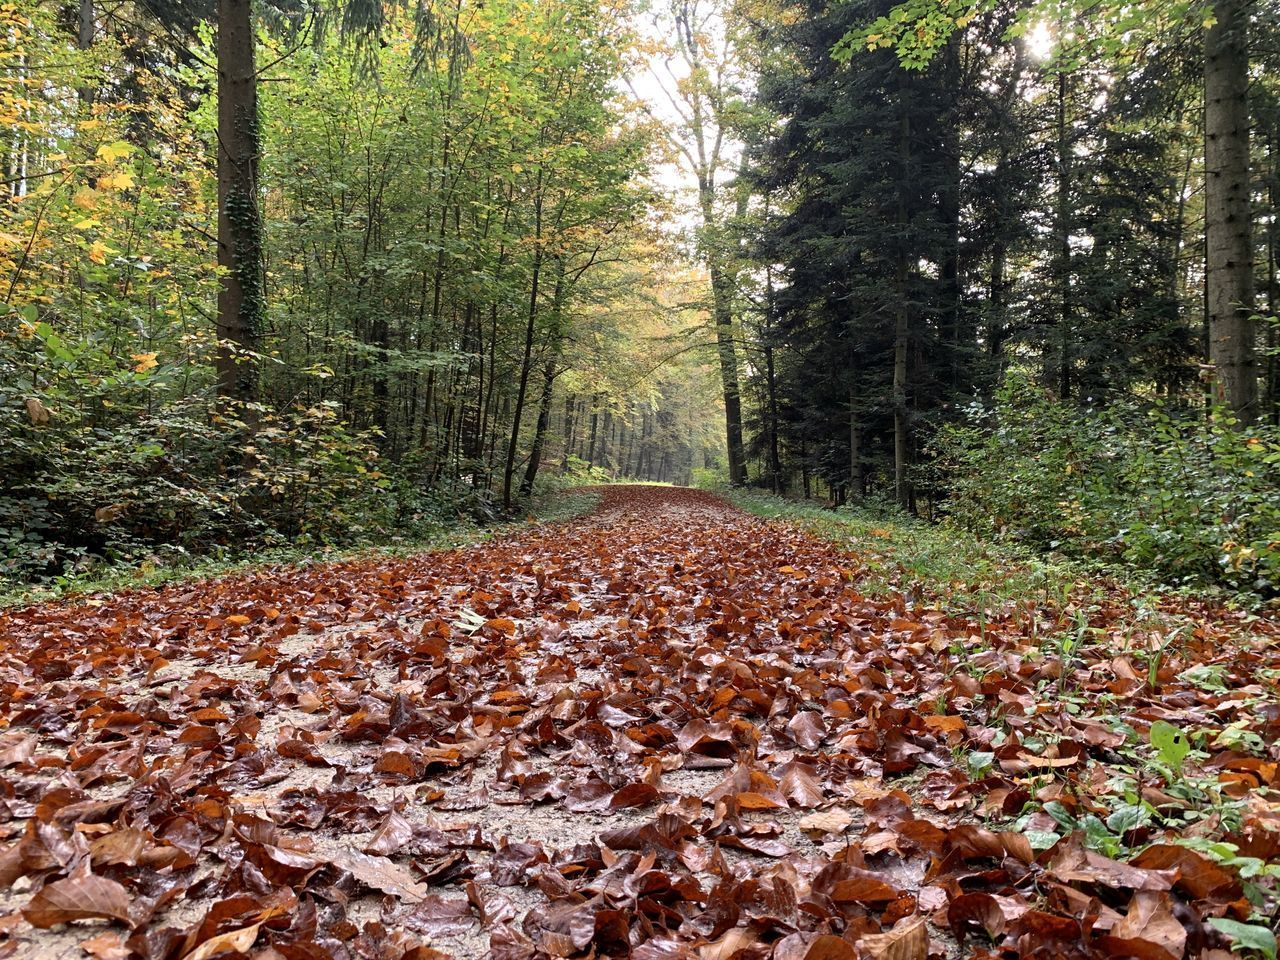 SURFACE LEVEL OF AUTUMN LEAVES IN FOREST